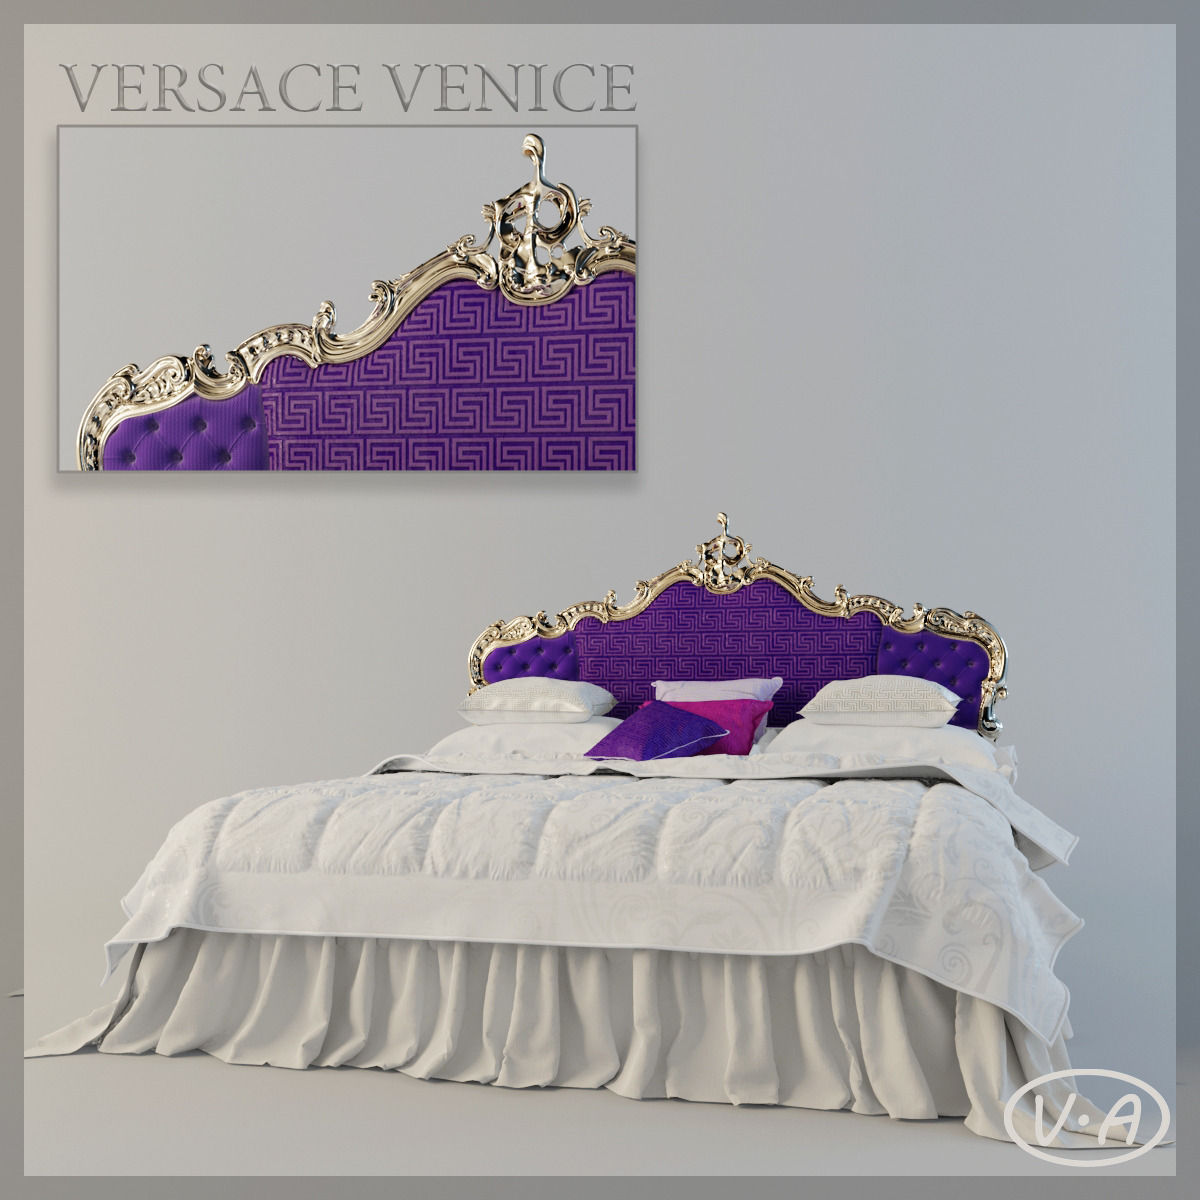 versace-venice-bed-3d-model-max Versace Home Furniture on liz claiborne home furniture, max studio home furniture, missoni home furniture, ralph lauren home furniture, b&b italia furniture, nautica home furniture, bmw furniture, nike home furniture, fleur de lis home furniture, homey design furniture, classic home furniture, hermes home furniture, spiegel home furniture, fendi home furniture, tahari home furniture, eco home furniture, nicole miller home furniture, d&g home furniture, jessica mcclintock home furniture, contemporary home furniture,